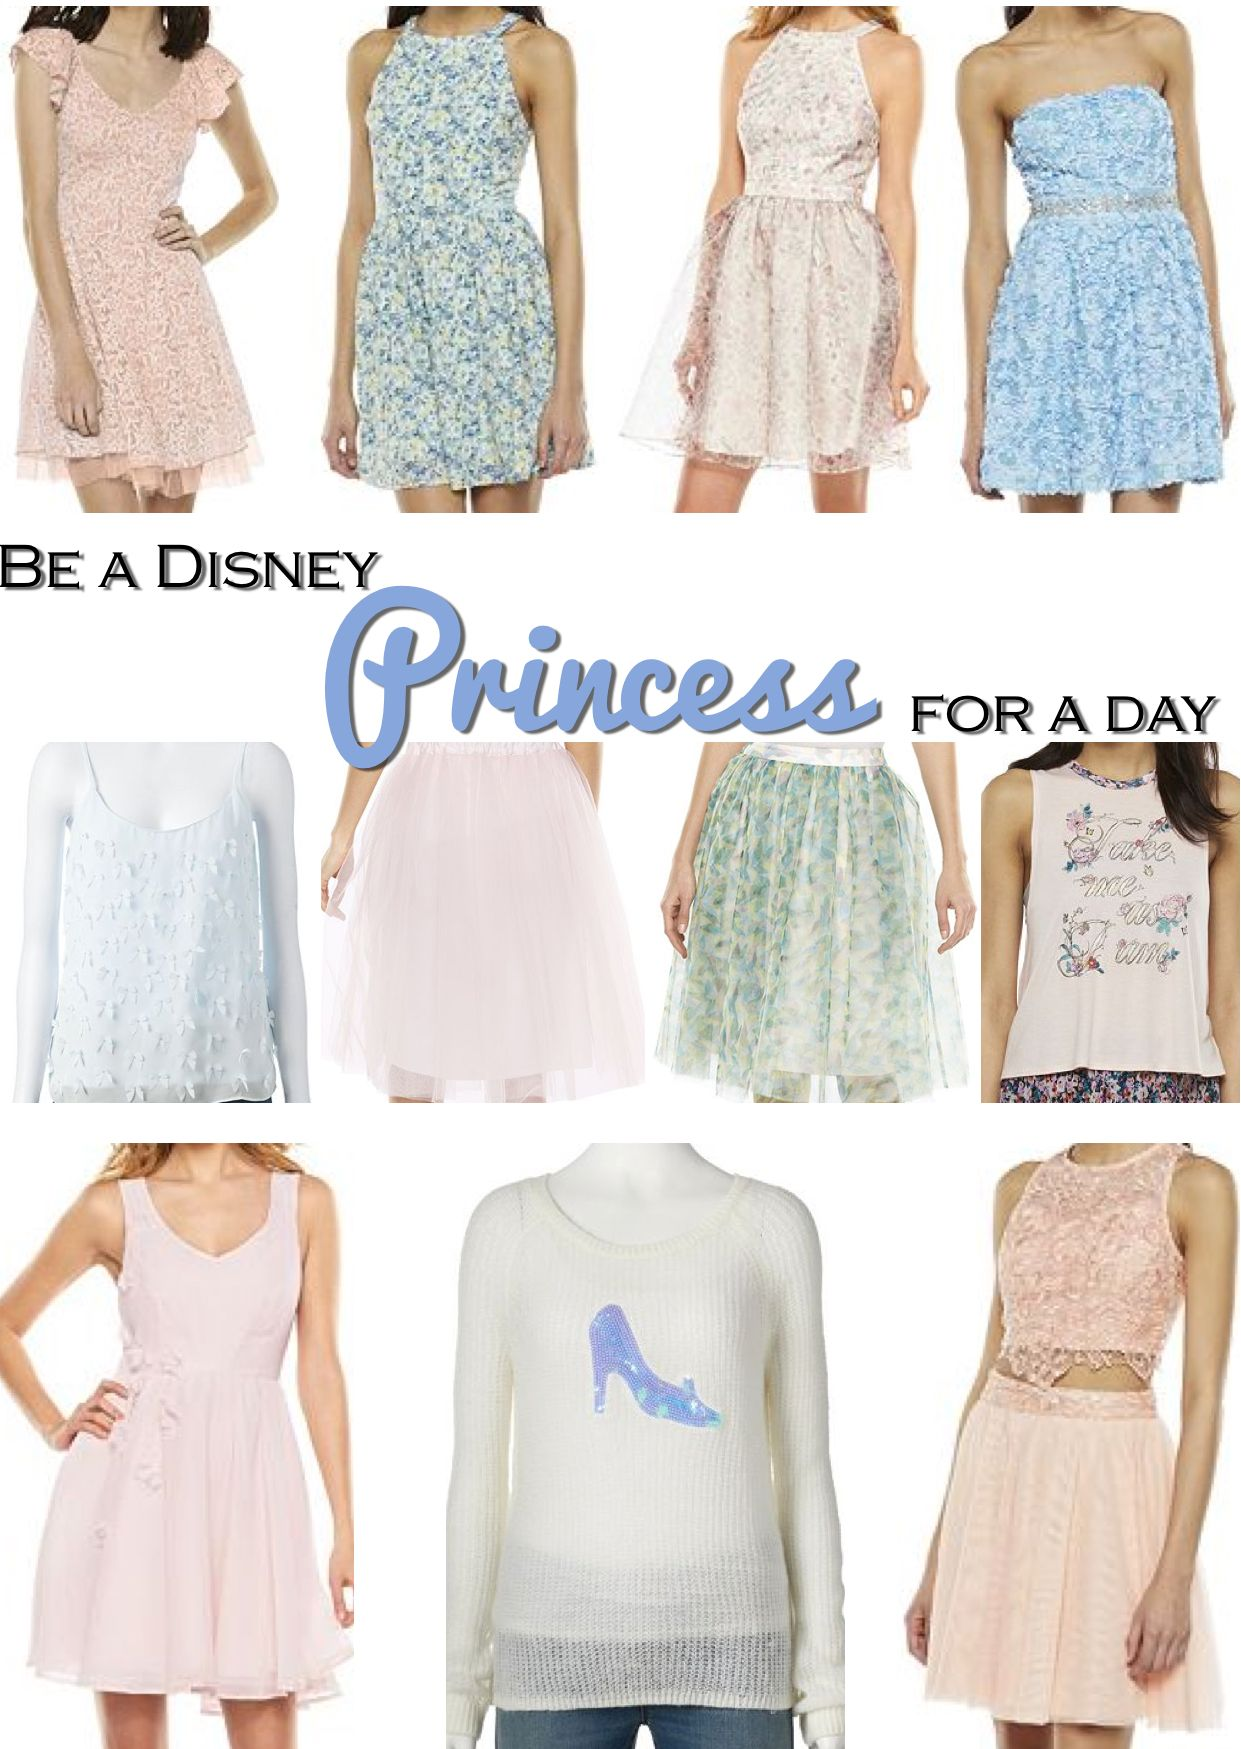 kohls wedding dresses Kohl s Disney LC by Lauren Conrad Cinderella Collection girly whimsical and carefree